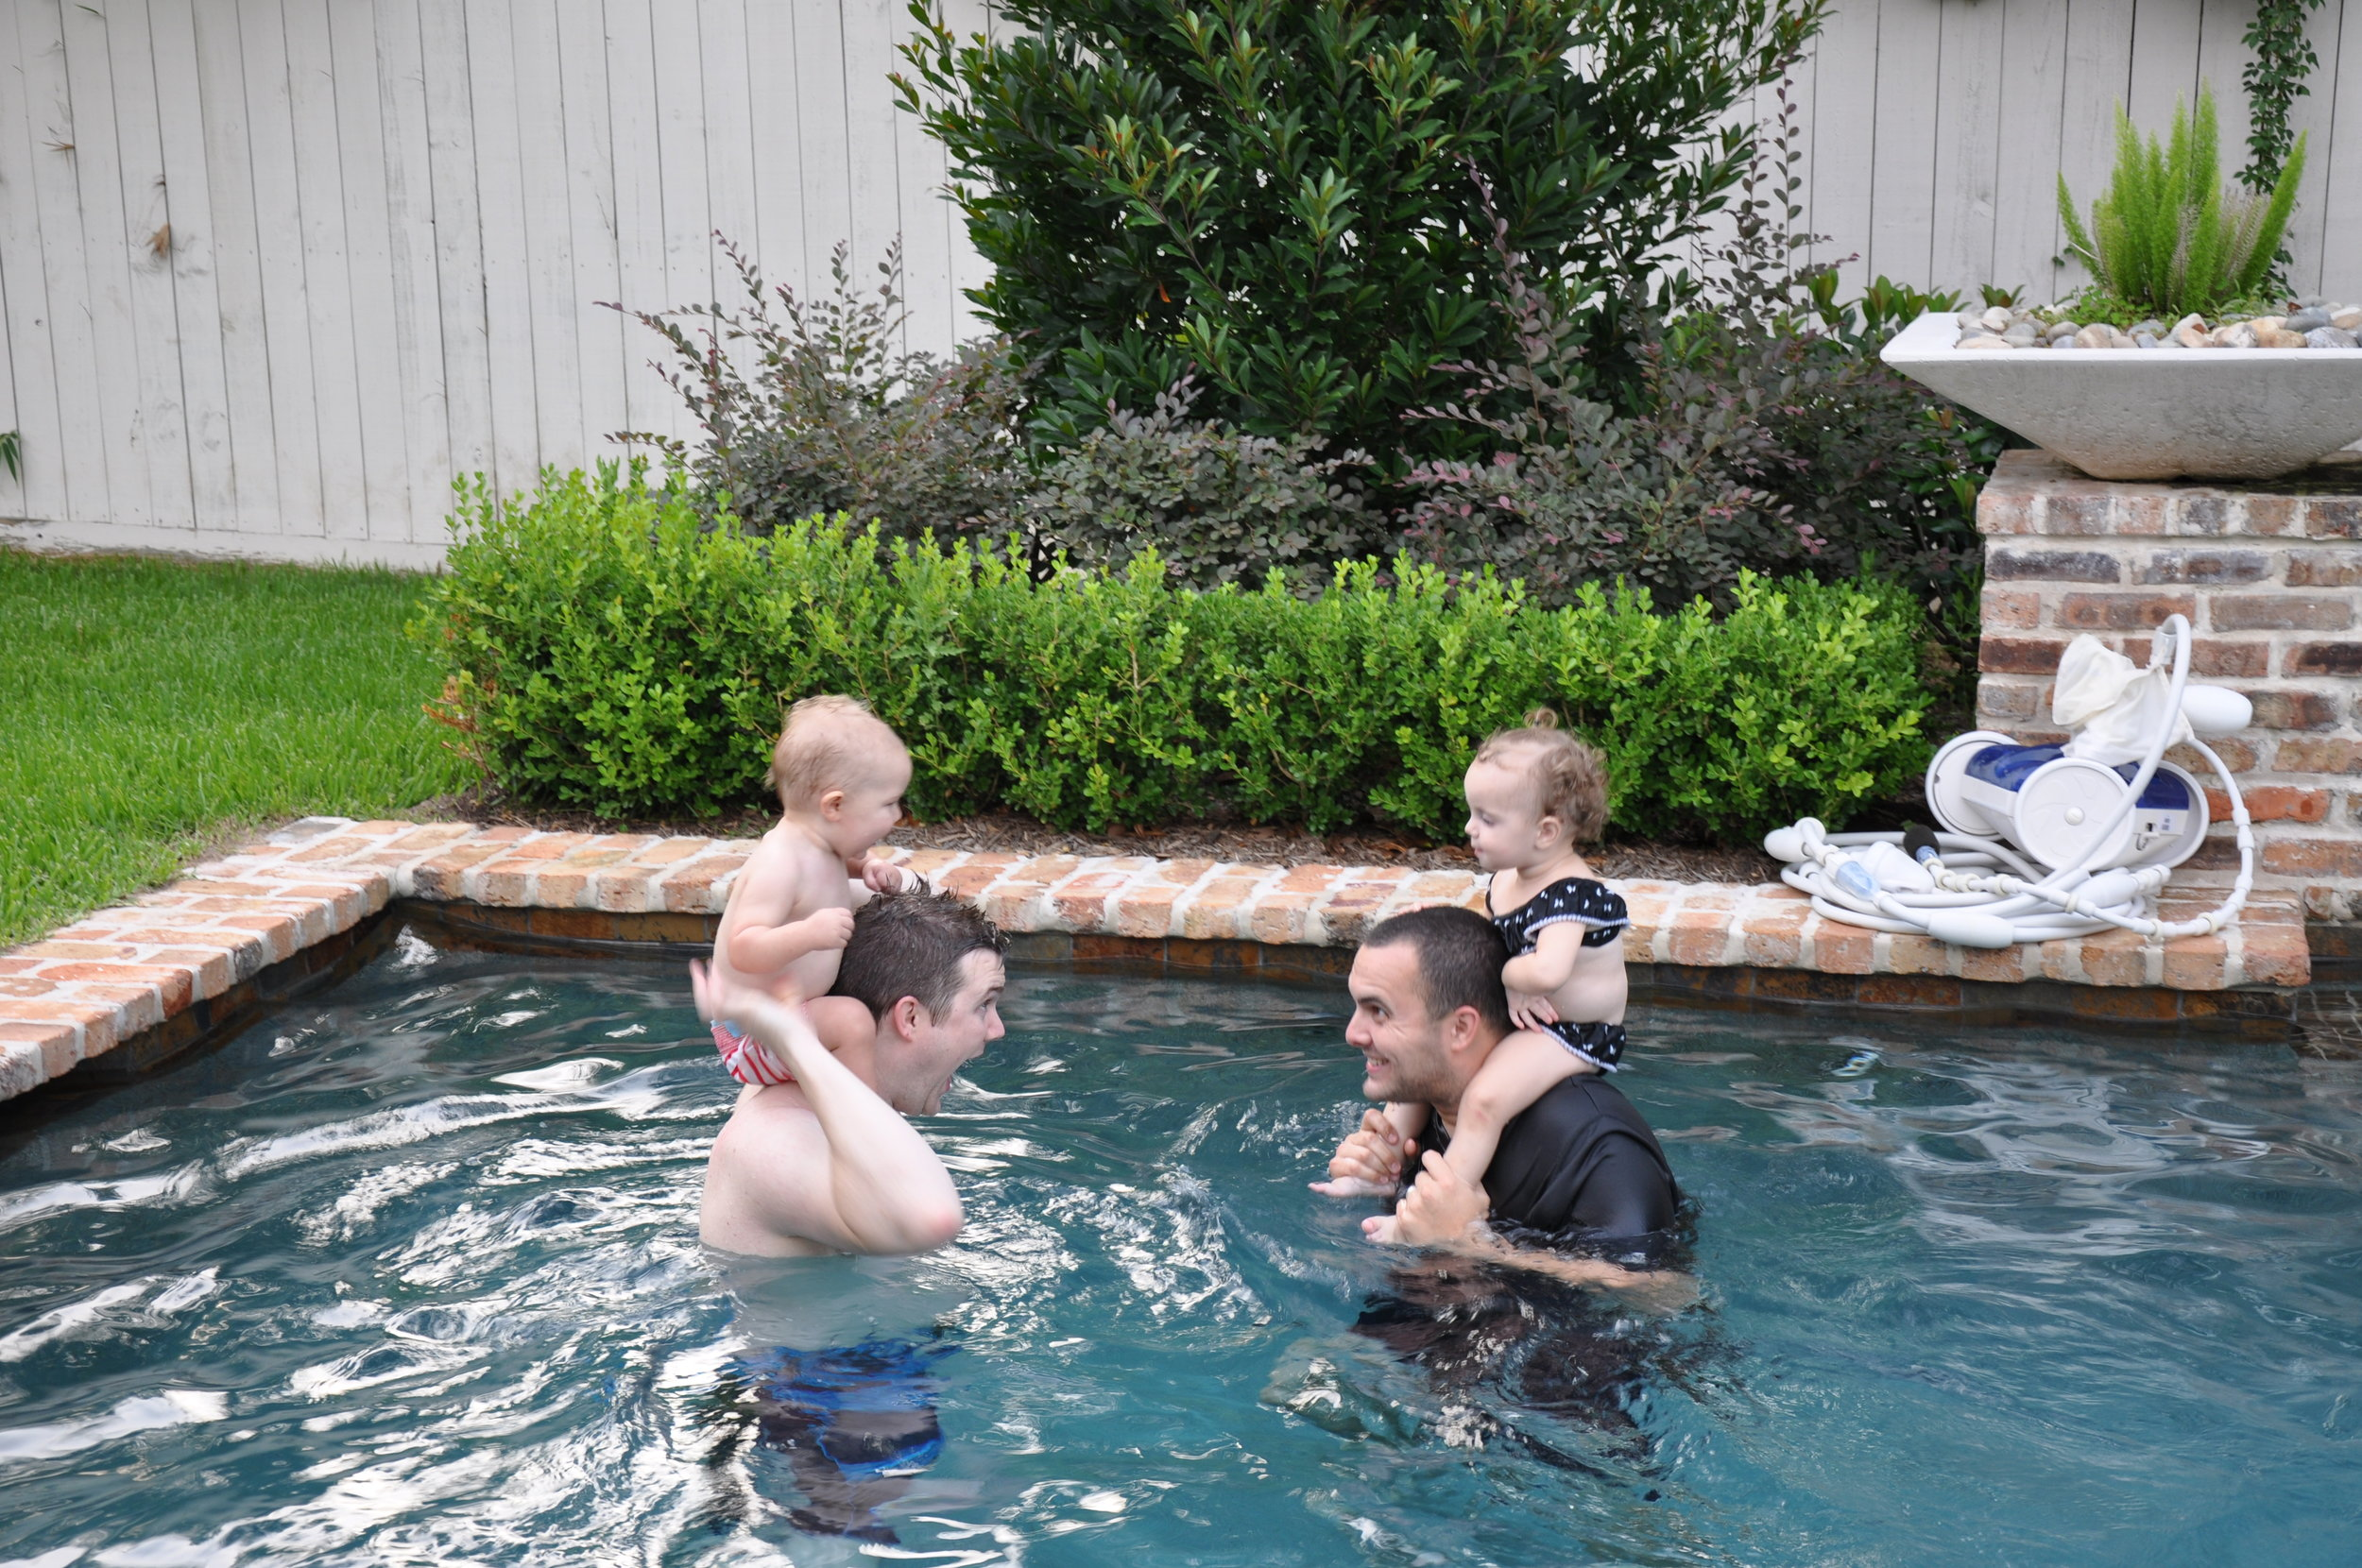 Chicken fights in our pool (Mercer and Jarret won!)